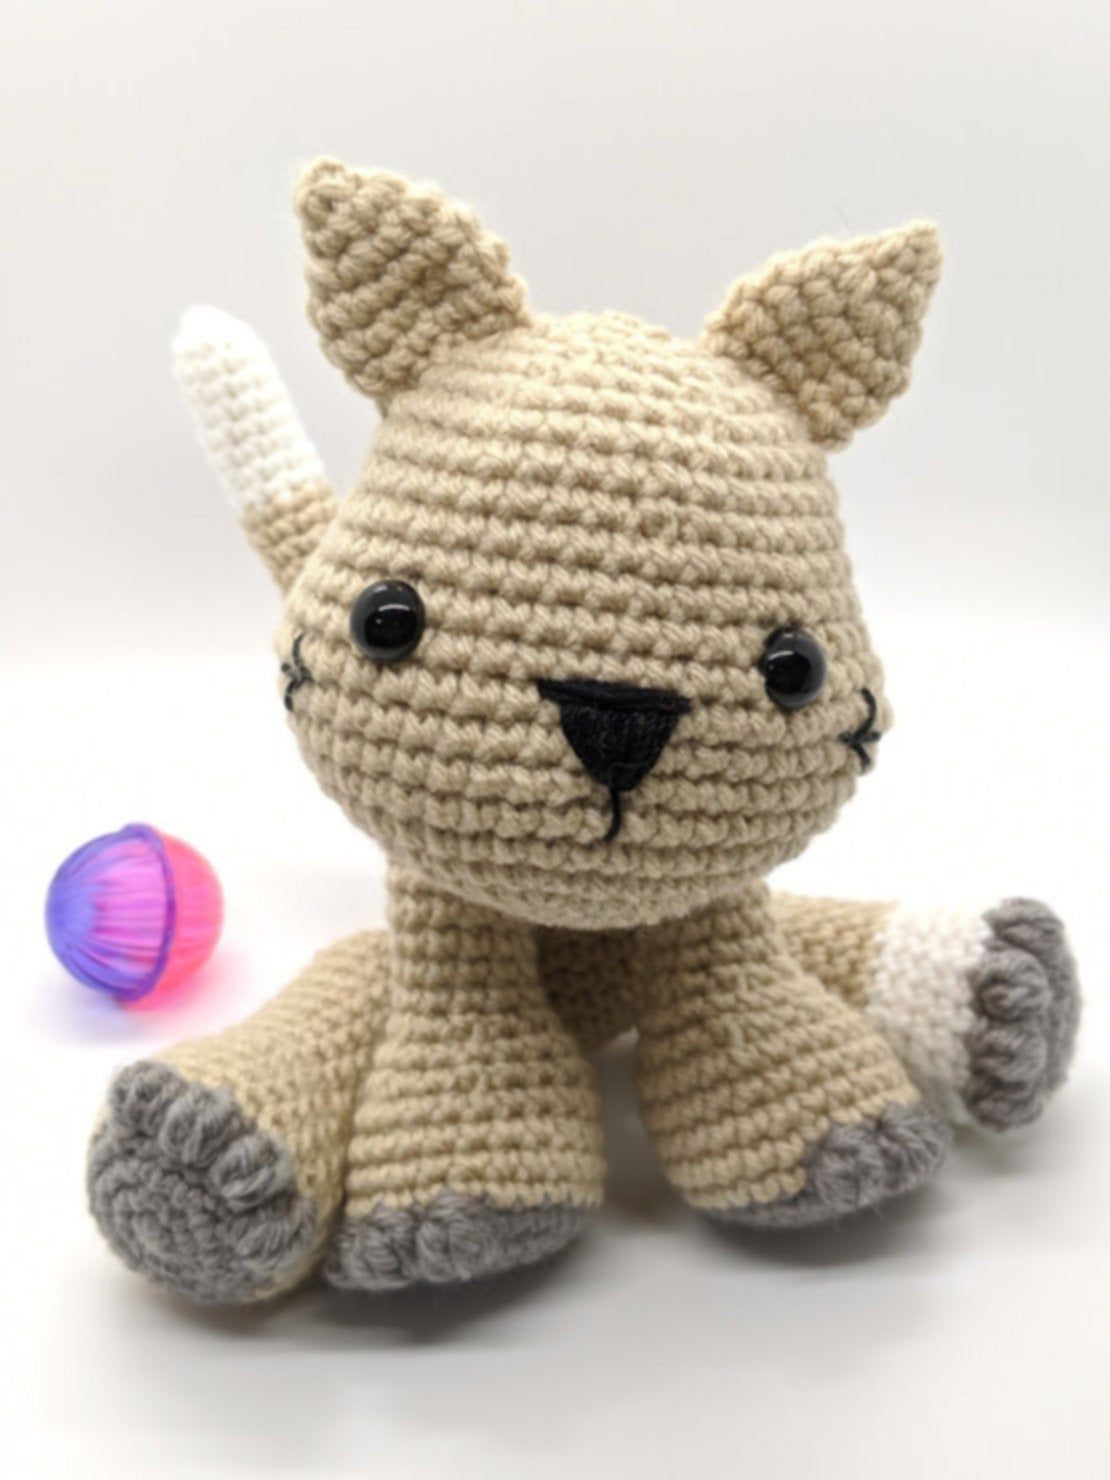 Maple the Kitty PDF Plush Cat Pattern #crochetdinosaurpatterns Meet Maple the Kitty Cat! The newest crochet pattern in the Dear Jacki Stitchery family! This is an adorable kitty cat pattern that is perfect for anyone who loves cats. Made with tan yarn in the pattern but would be sweet in a multi colored yarn. When sitting, this kitty is 7 inches and the perfect size for snuggling. This pattern includes a photo tutorial and simple, detailed instructions. It is in a PDF format and will be availabl #crochetdinosaurpatterns